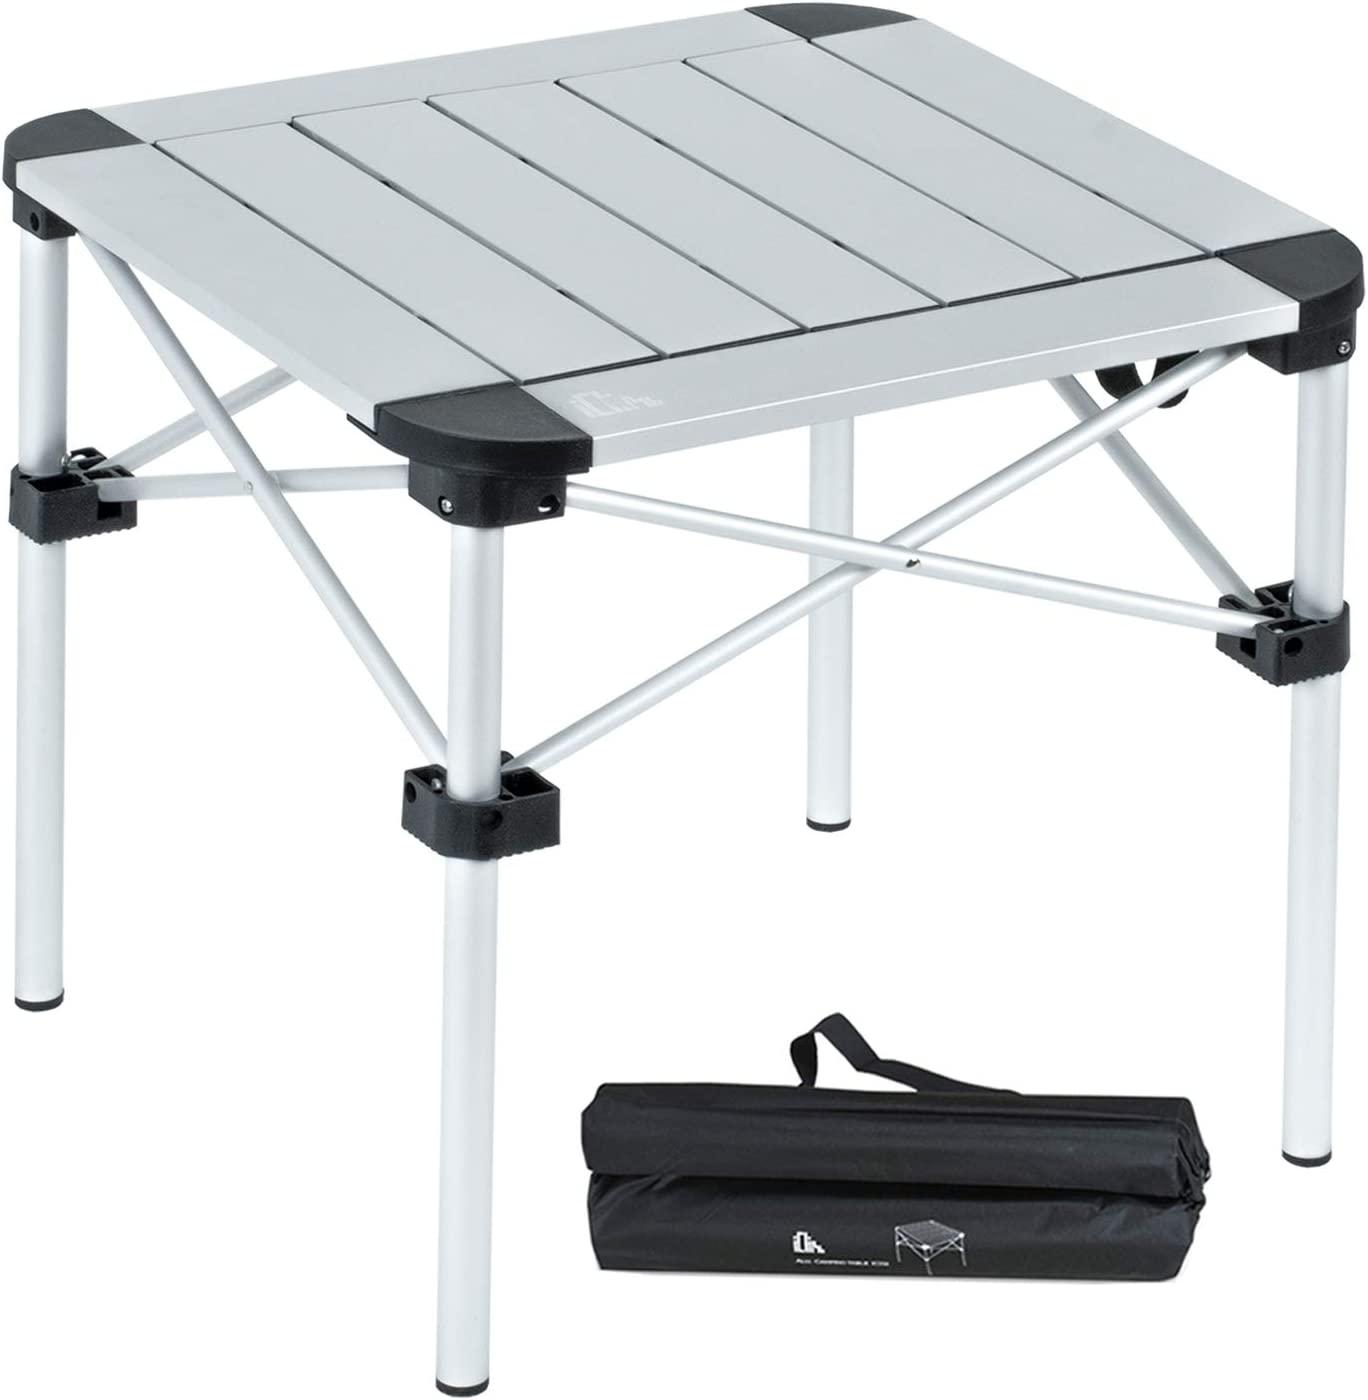 iClimb Lightweight Stable Alu. Now on sale Folding Table Cash special price Roll Square Up Top